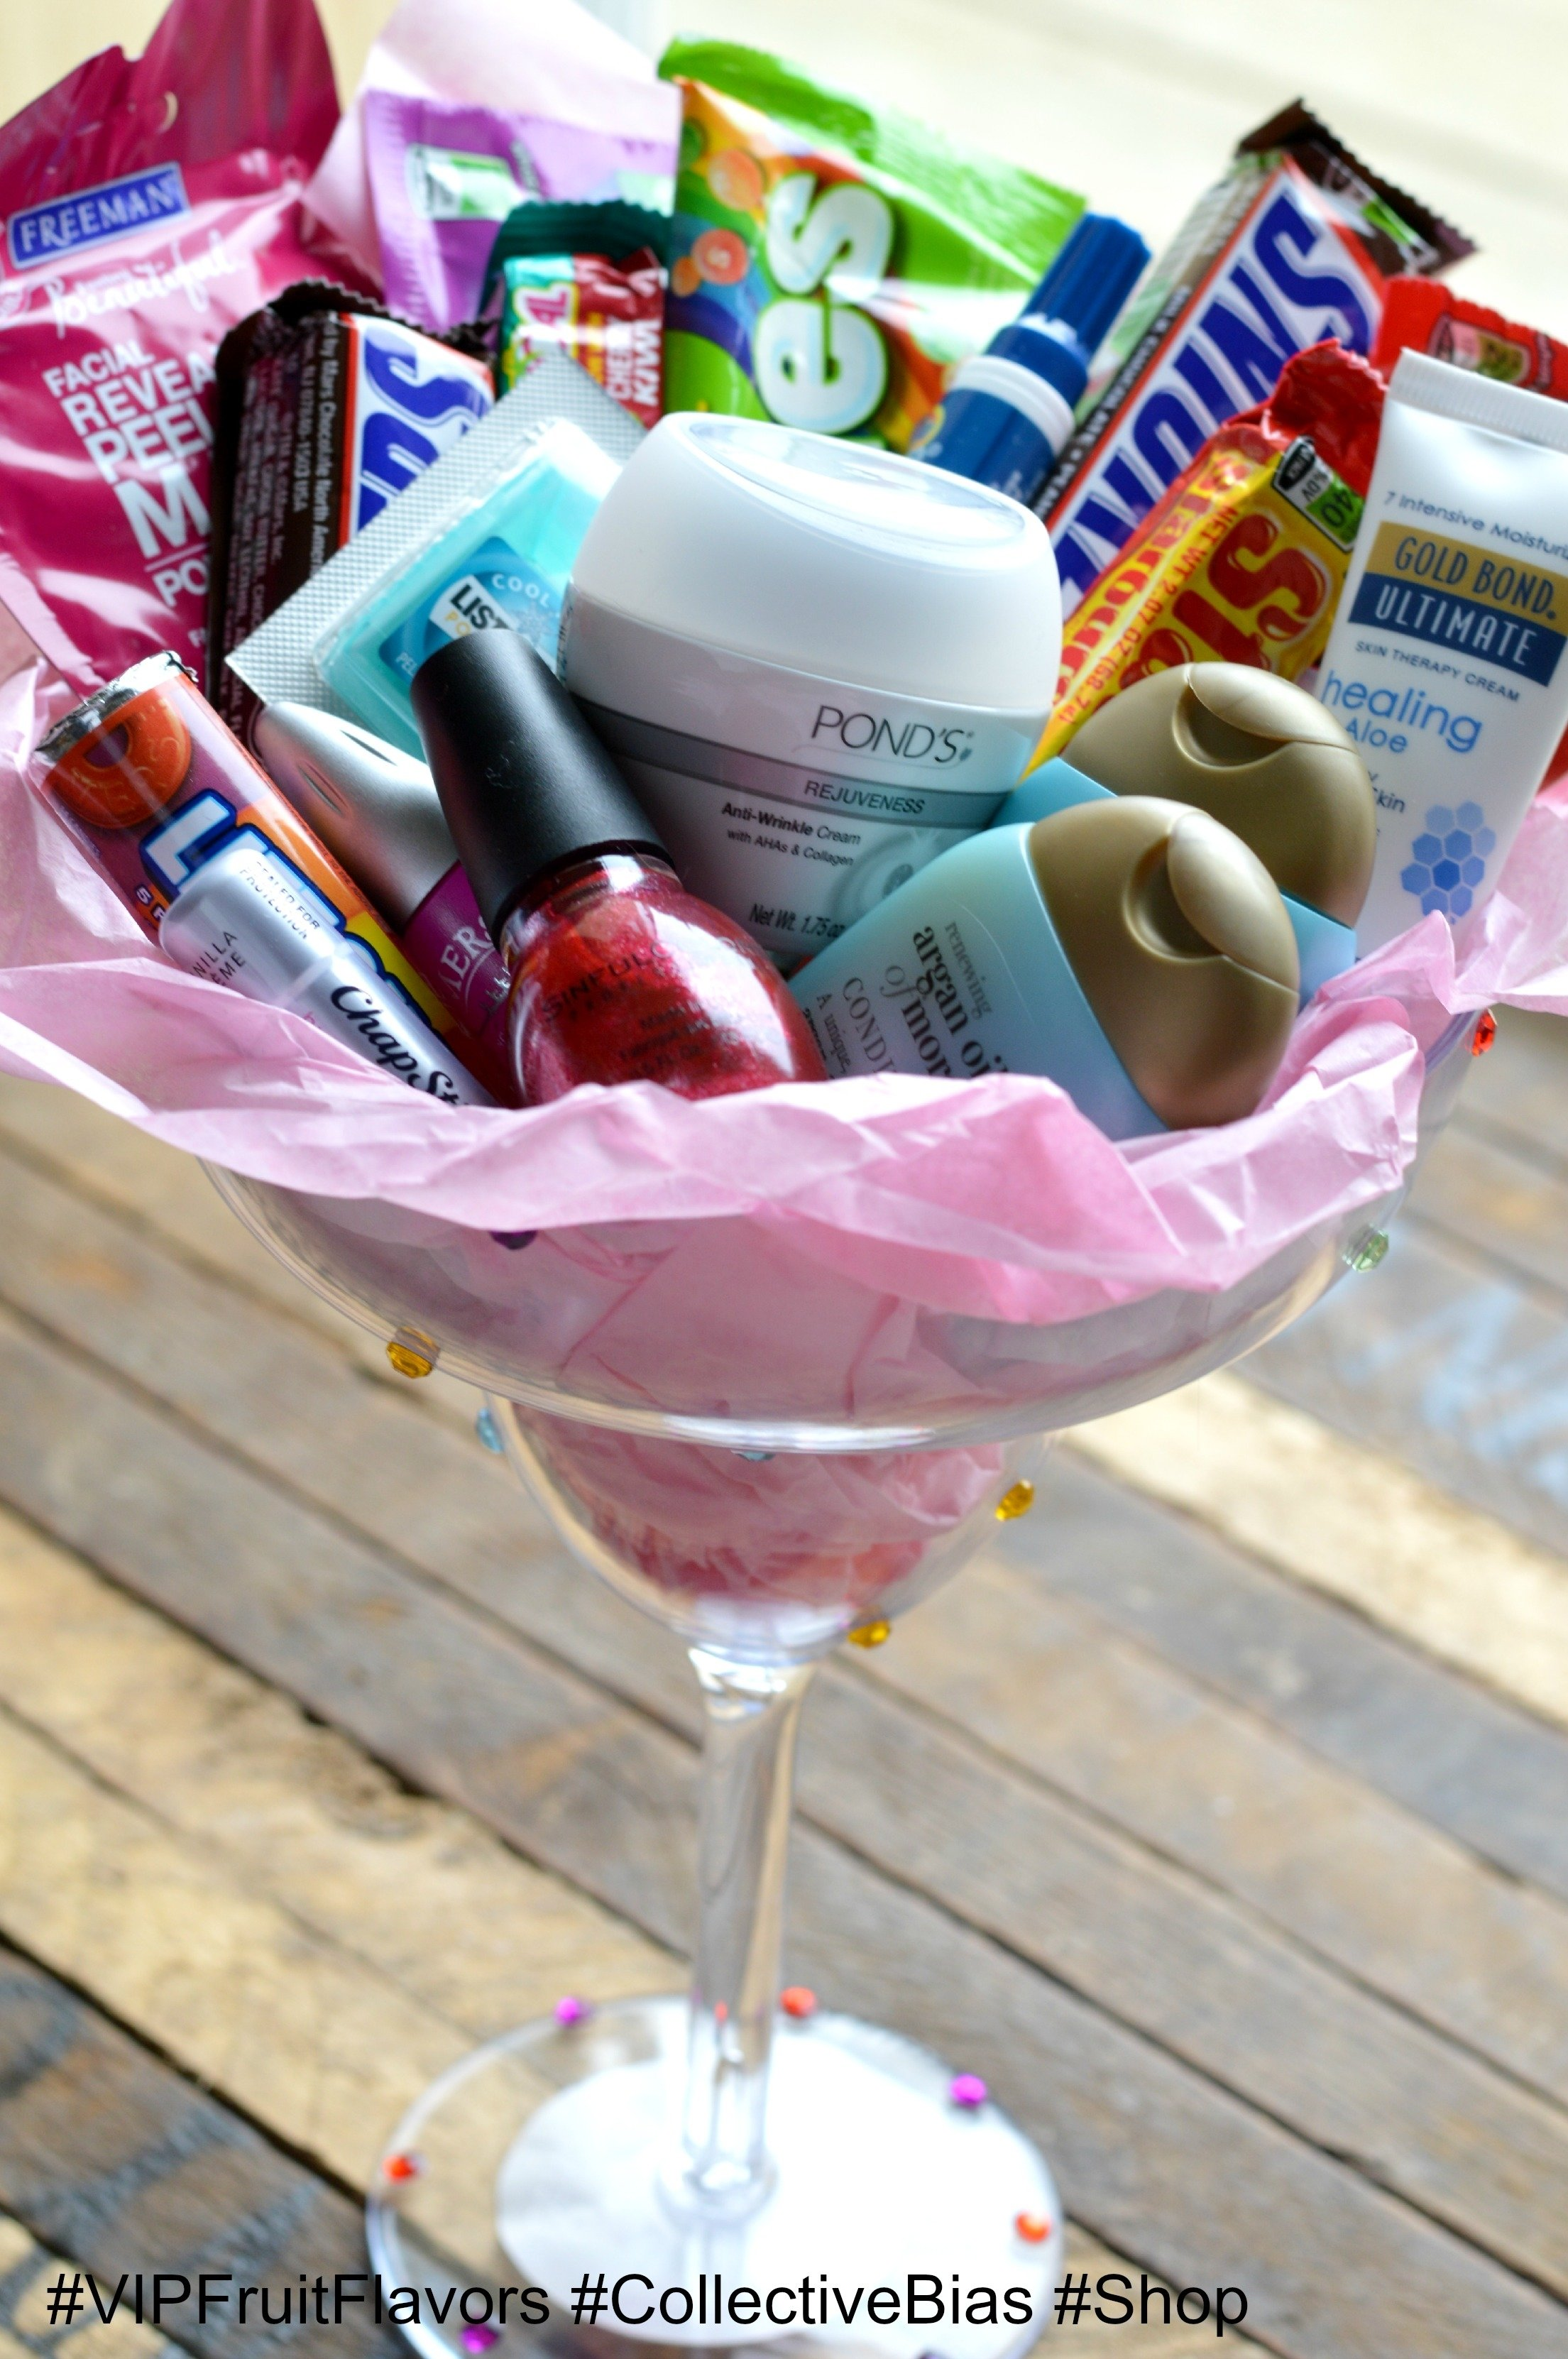 skittles & starburst make for awesome diy gifts - it's peachy keen